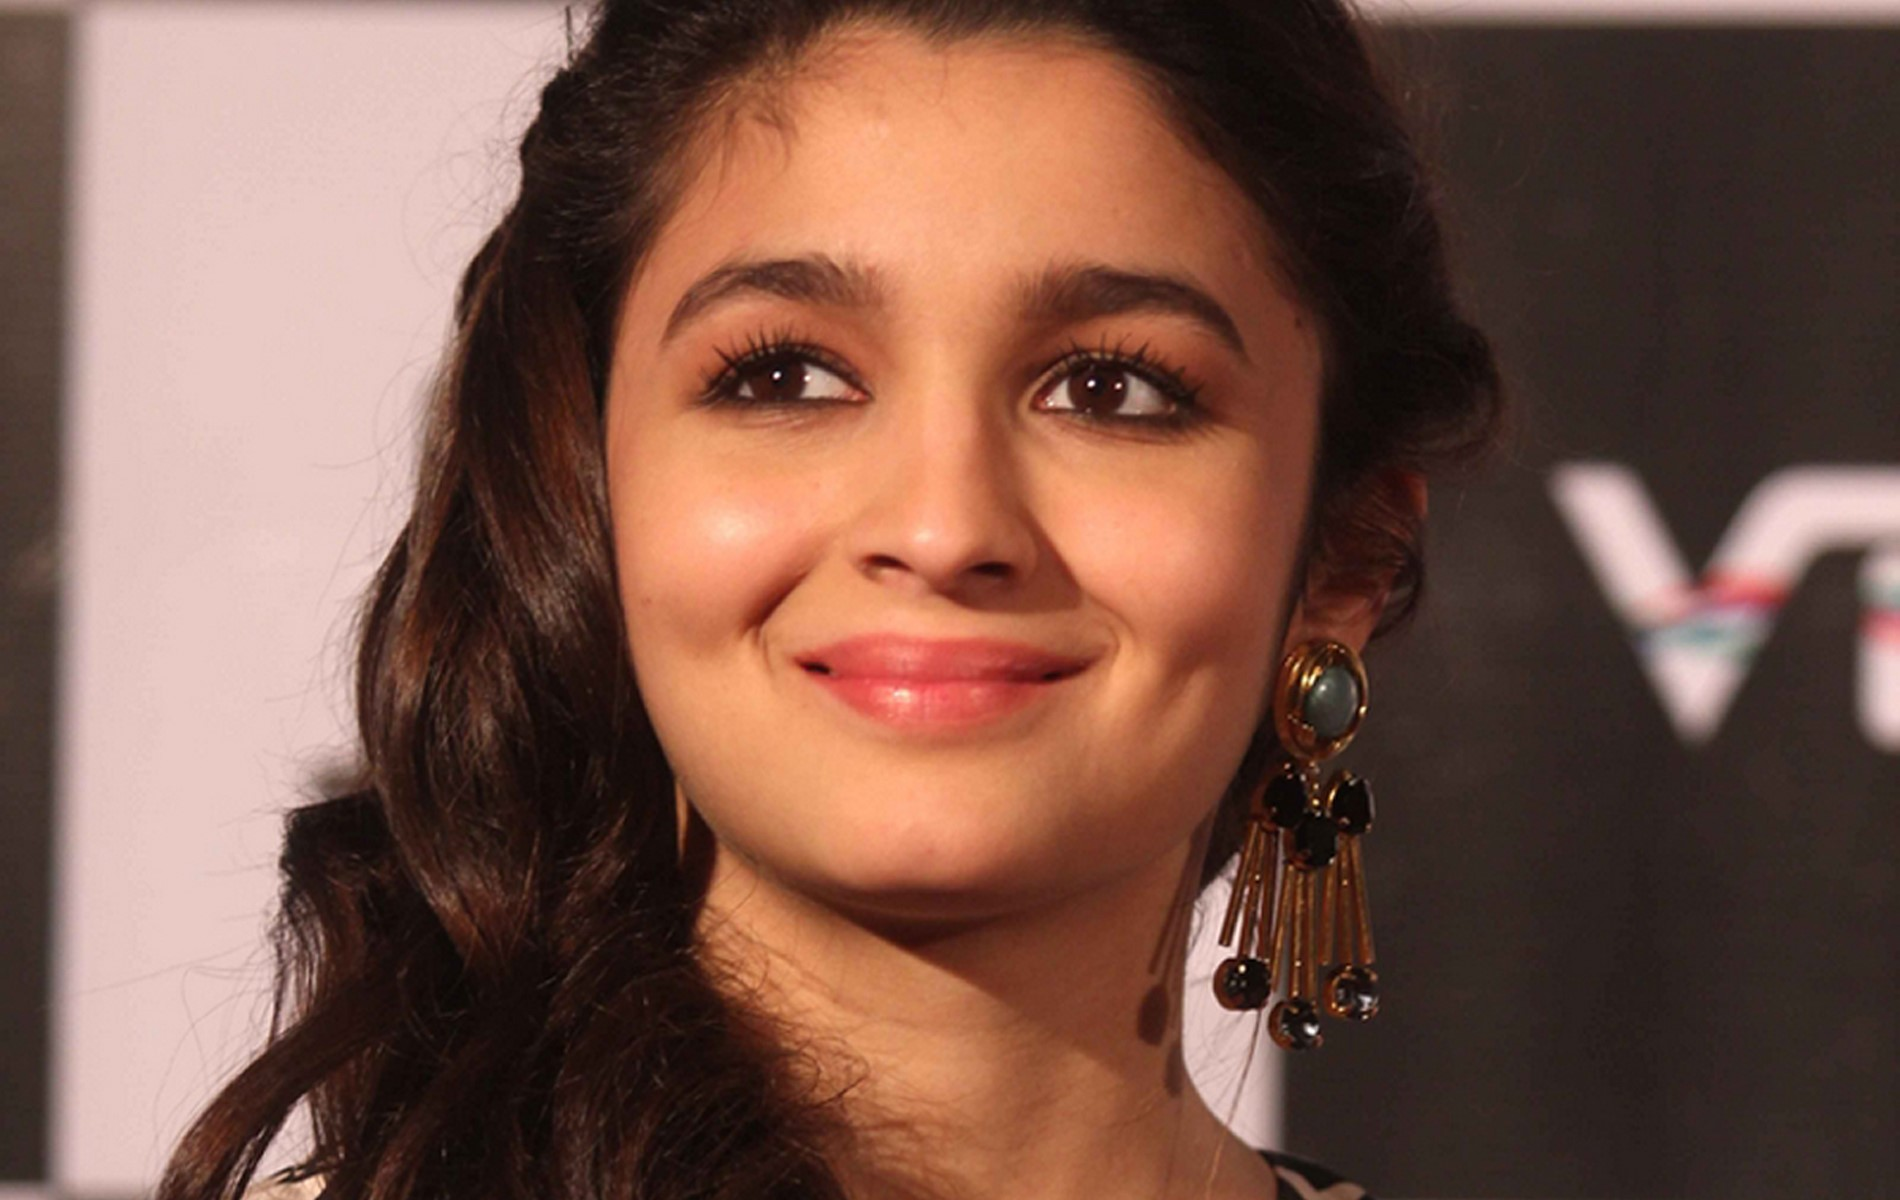 Amazing Alia Bhatt Look Background Mobile Download Hd Free Pictures